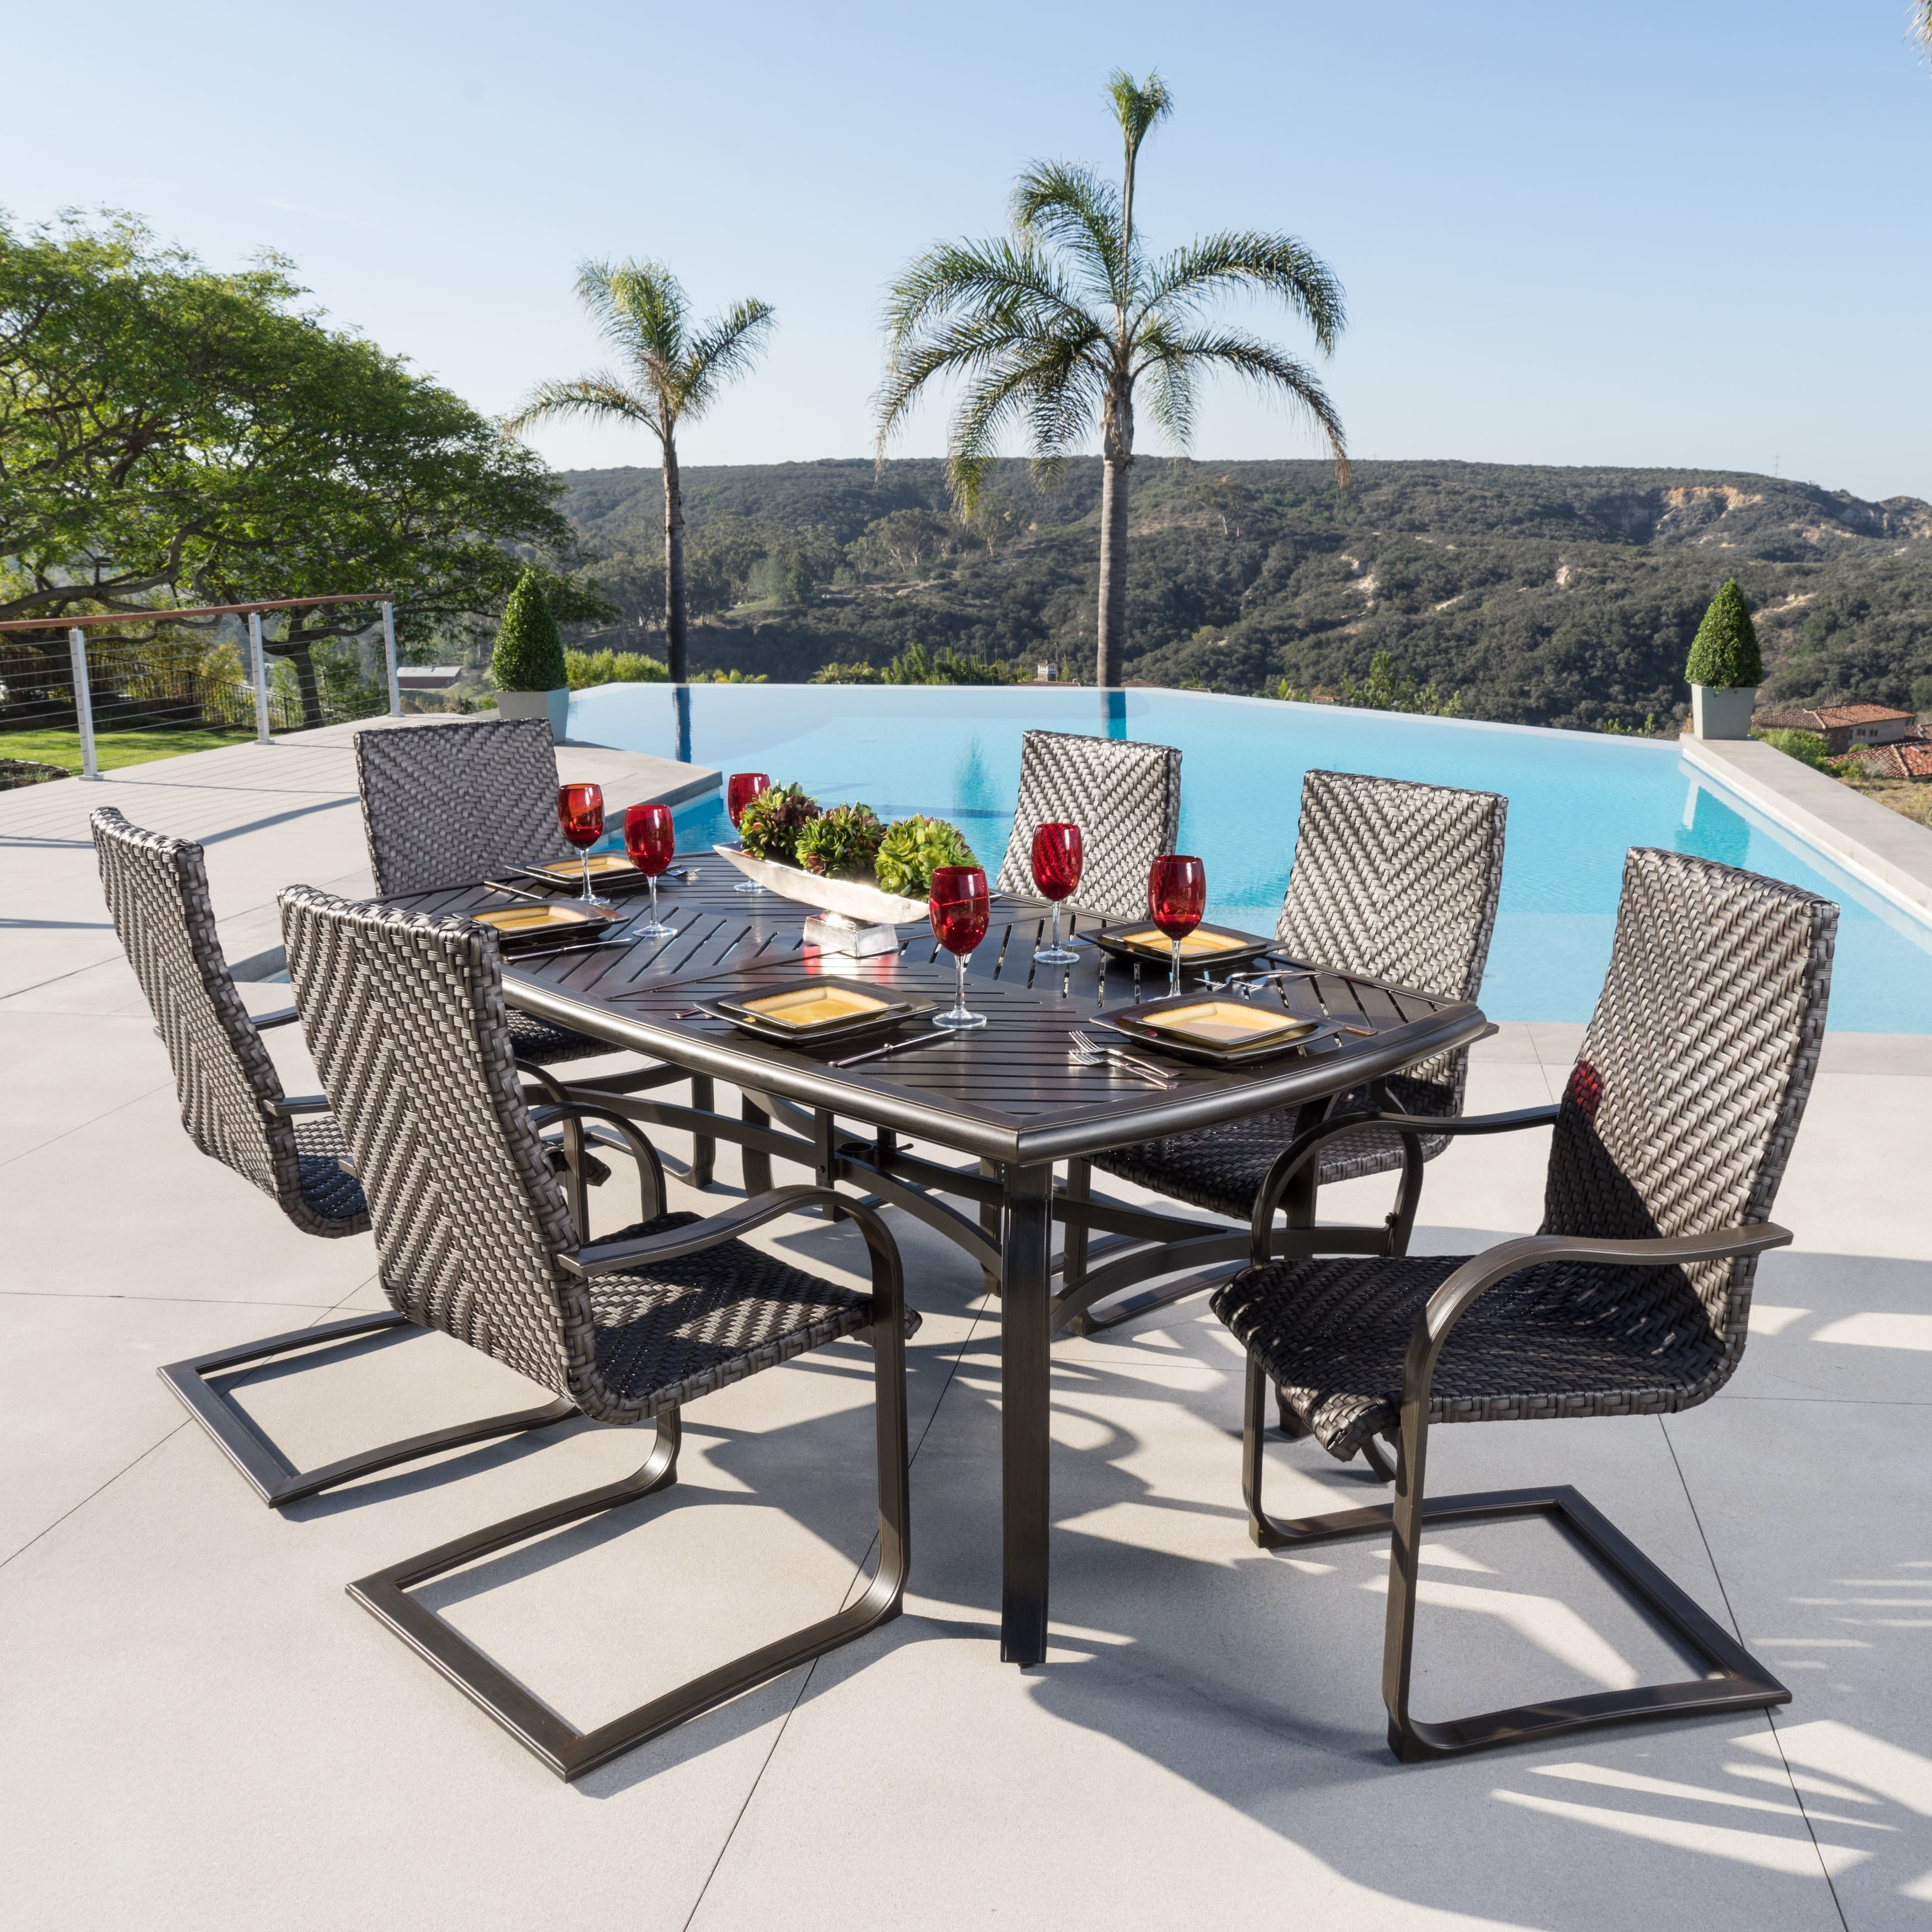 Buy Outdoor Dining Sets Online at Overstock | Our Best ...